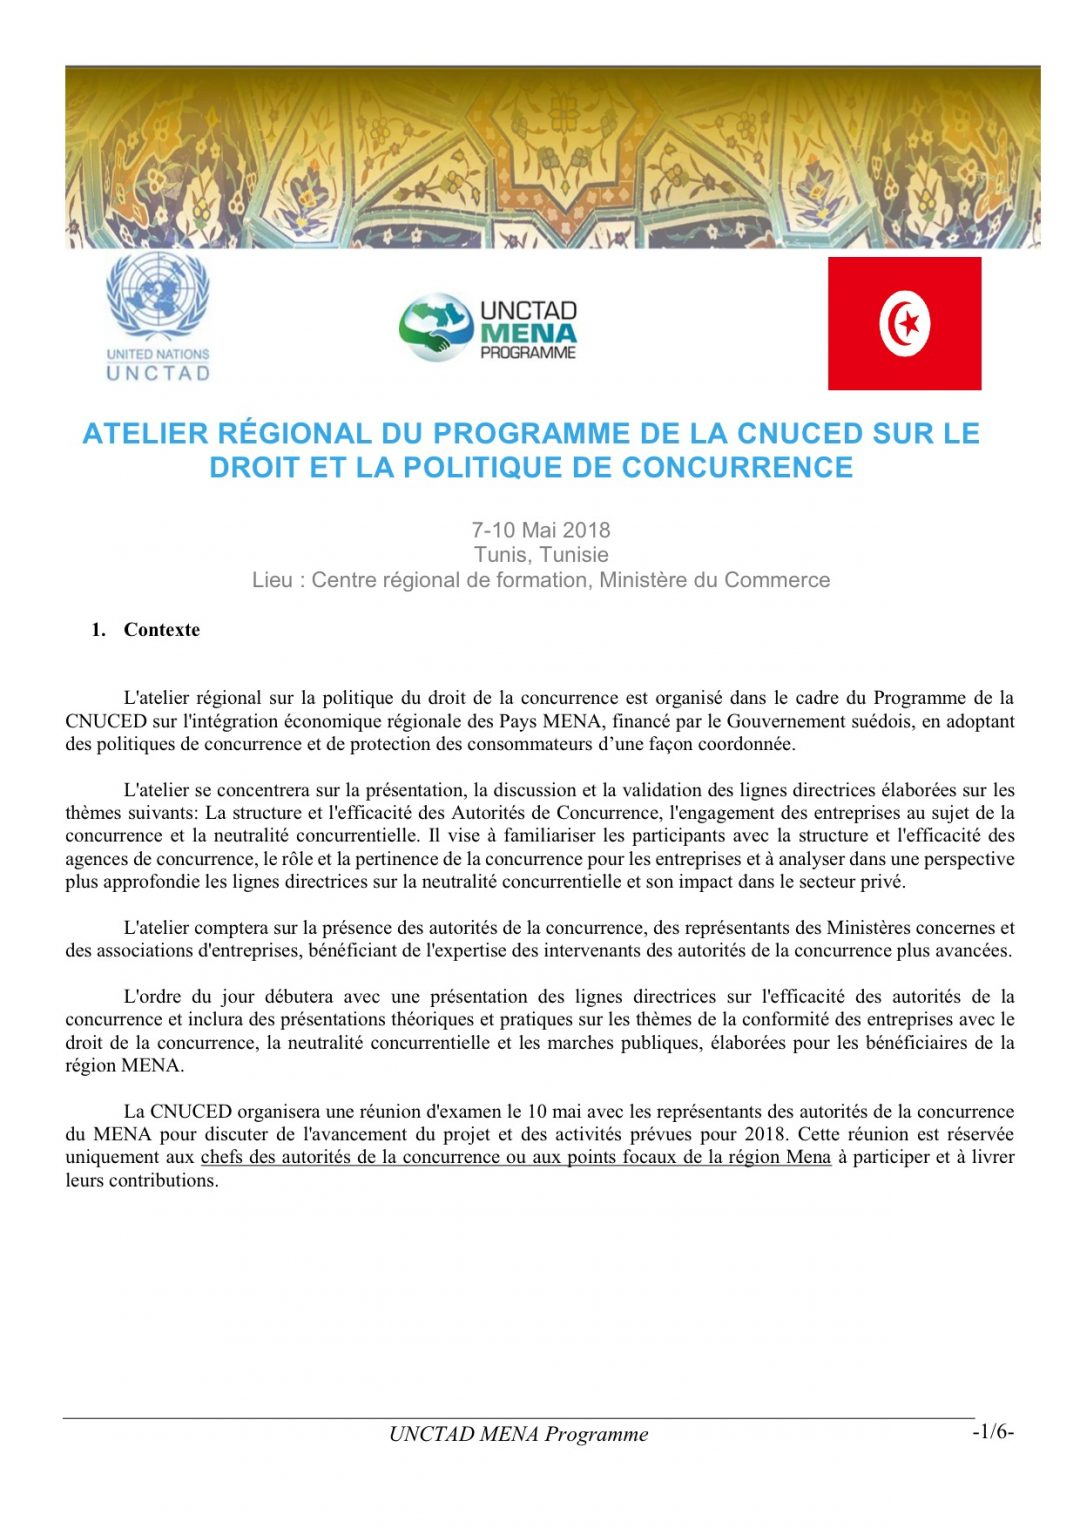 Programme – Regional Workshop on Competition Law and Policy, 7-10 May 2018 Tunis Tunisia